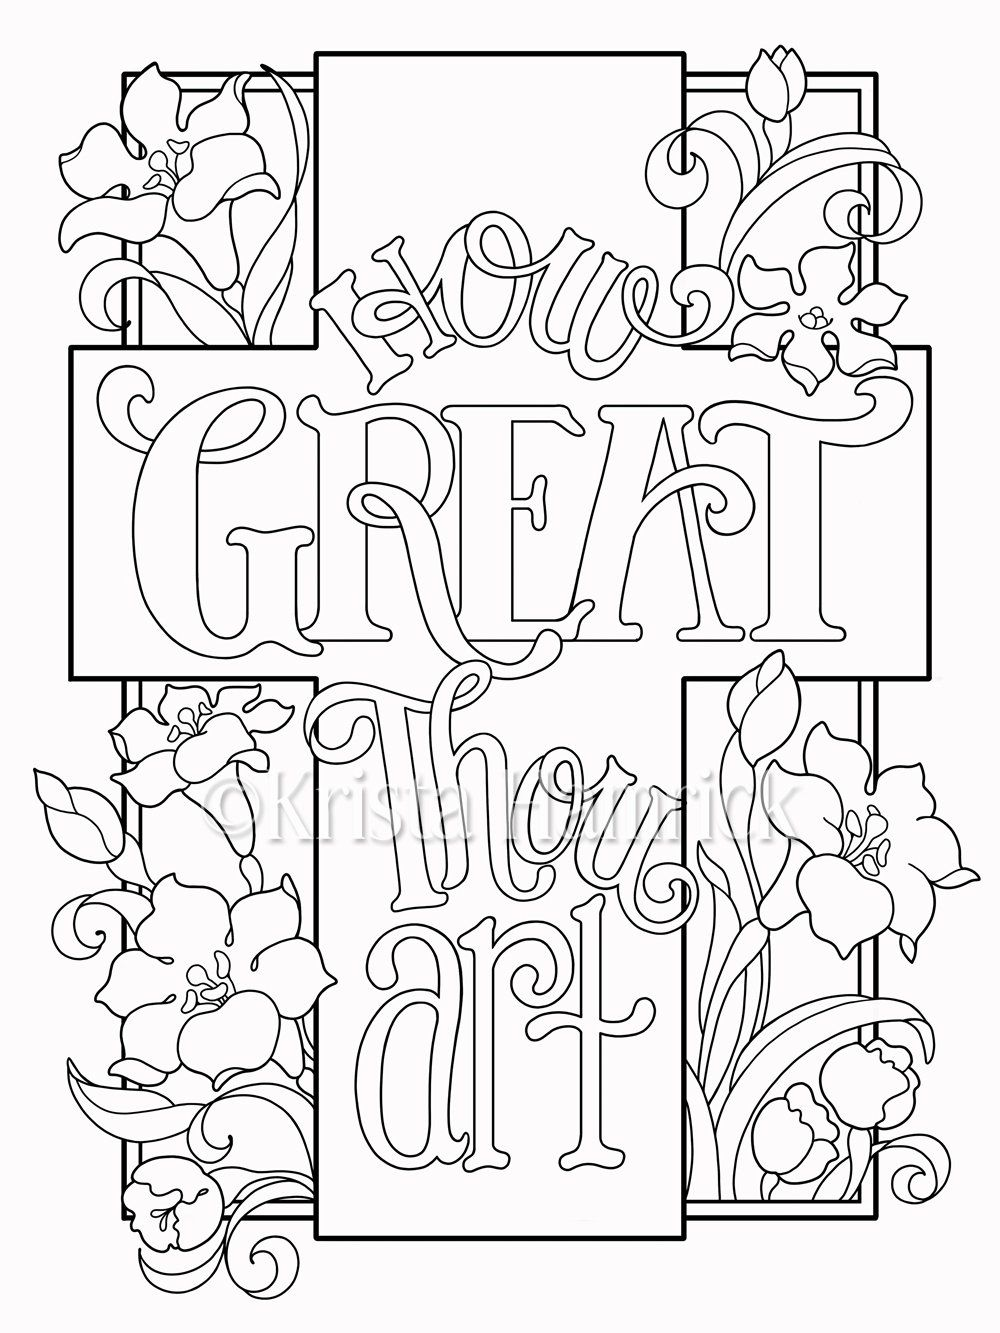 How Great Thou Art coloring page in two sizes 8.5X11